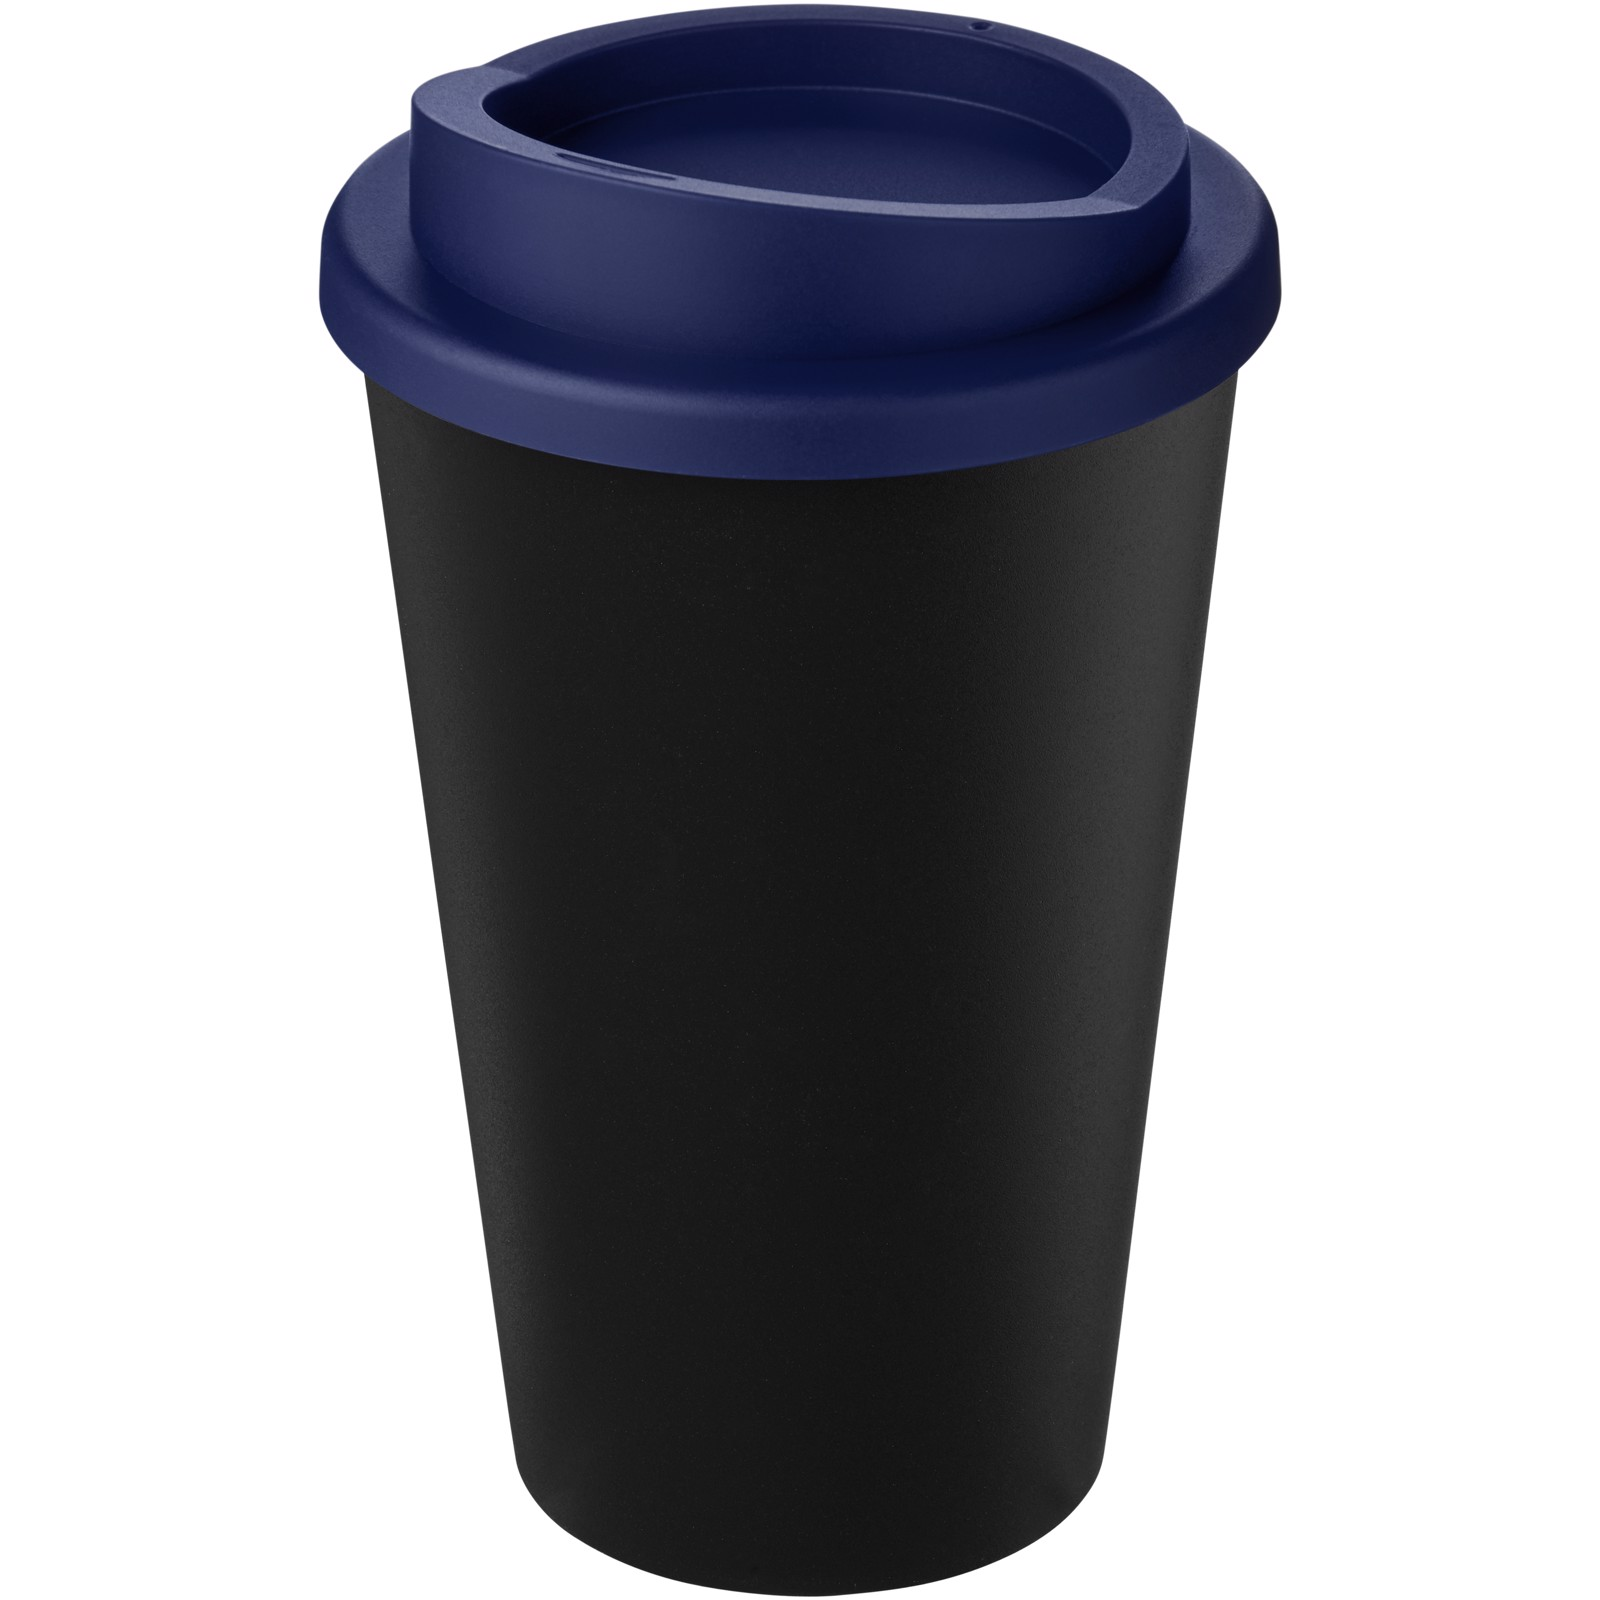 Americano Eco 350 ml recycled tumbler - Solid black / Blue